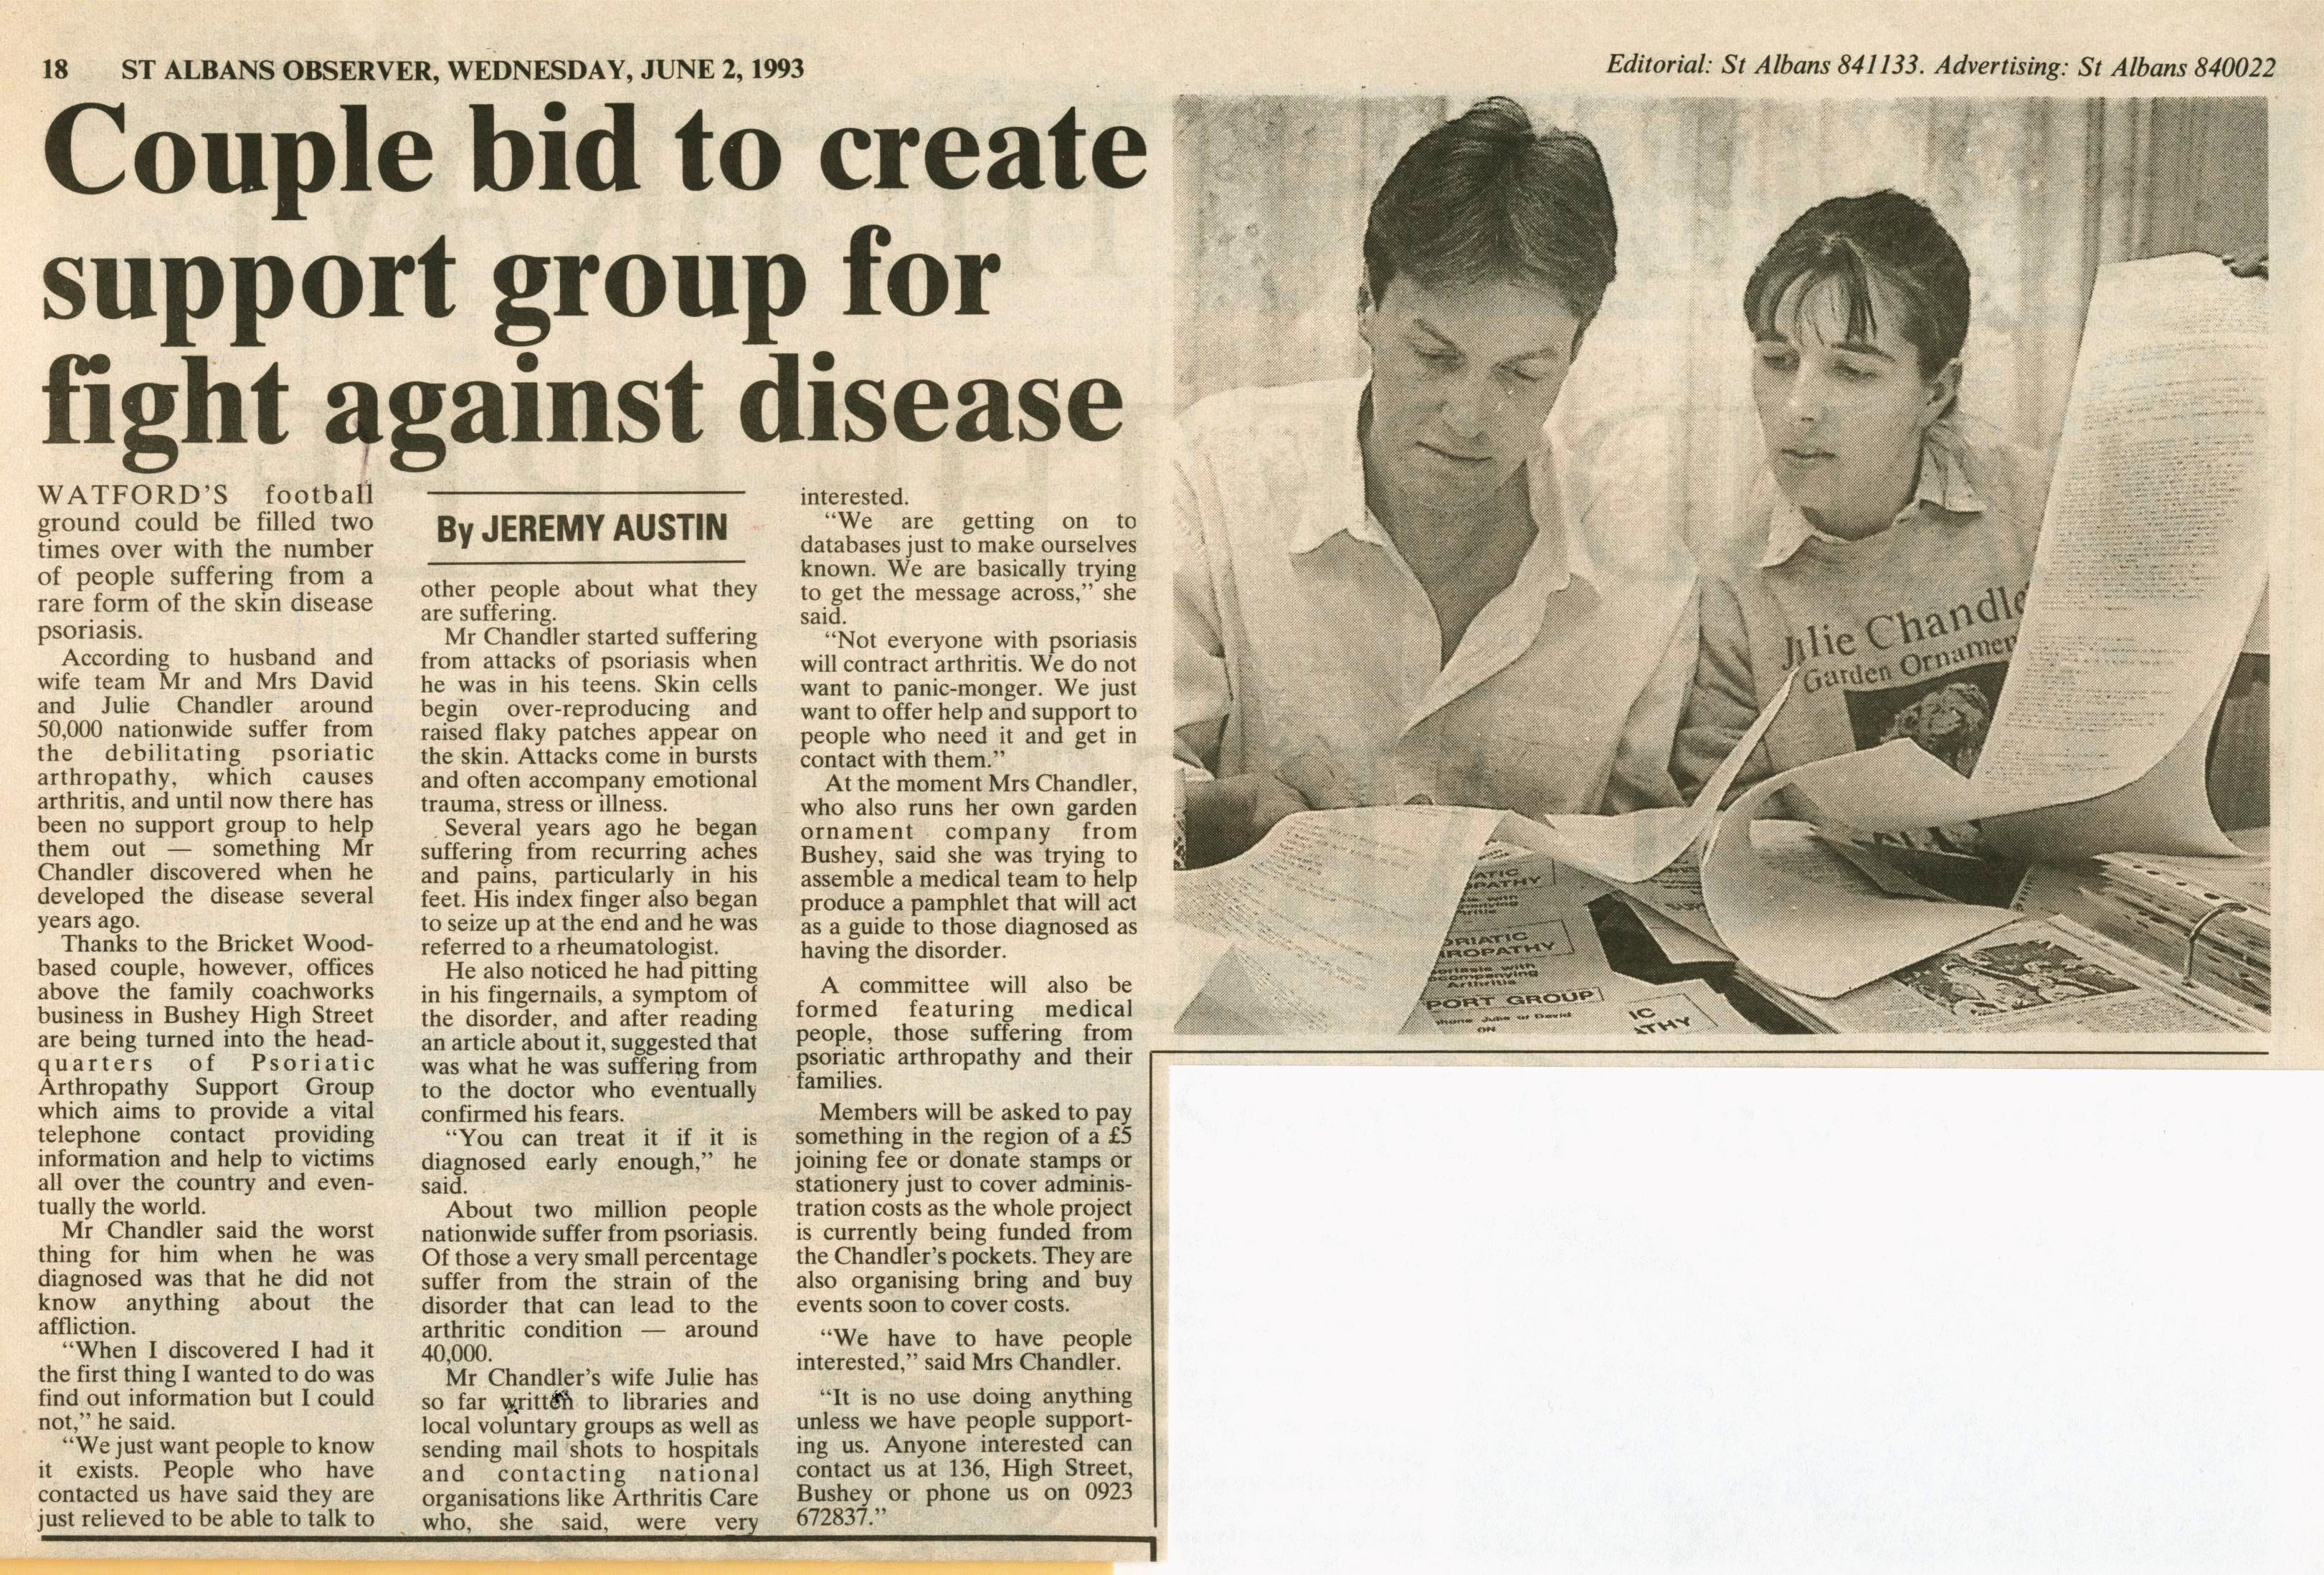 David and Julie Chandler article April 1993